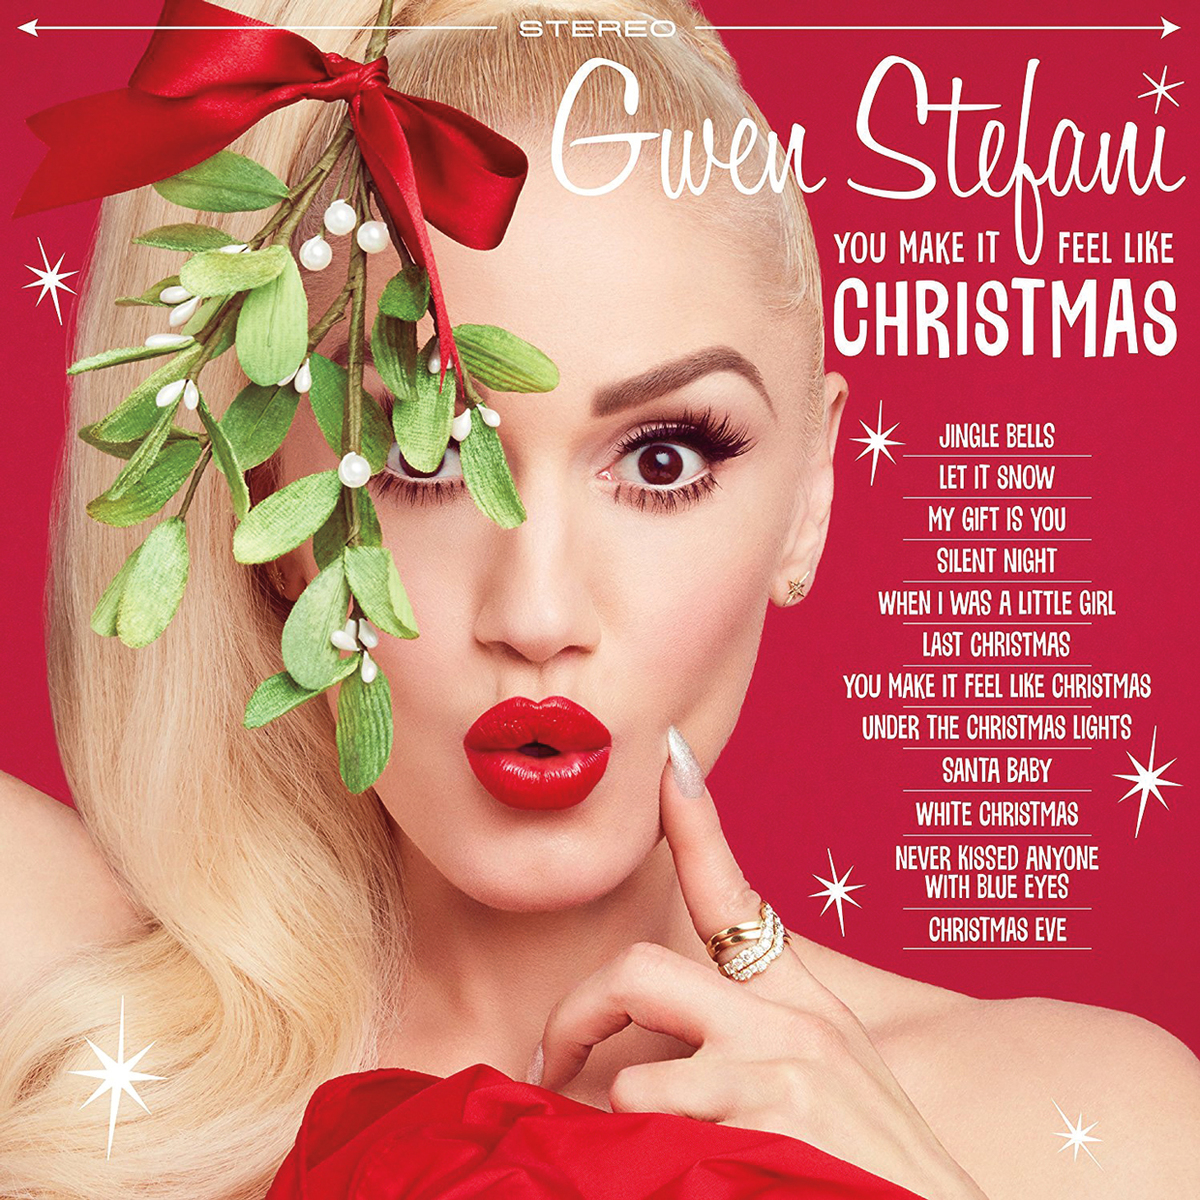 Gwen Stefani's New Album Brightens the Holiday Weekend